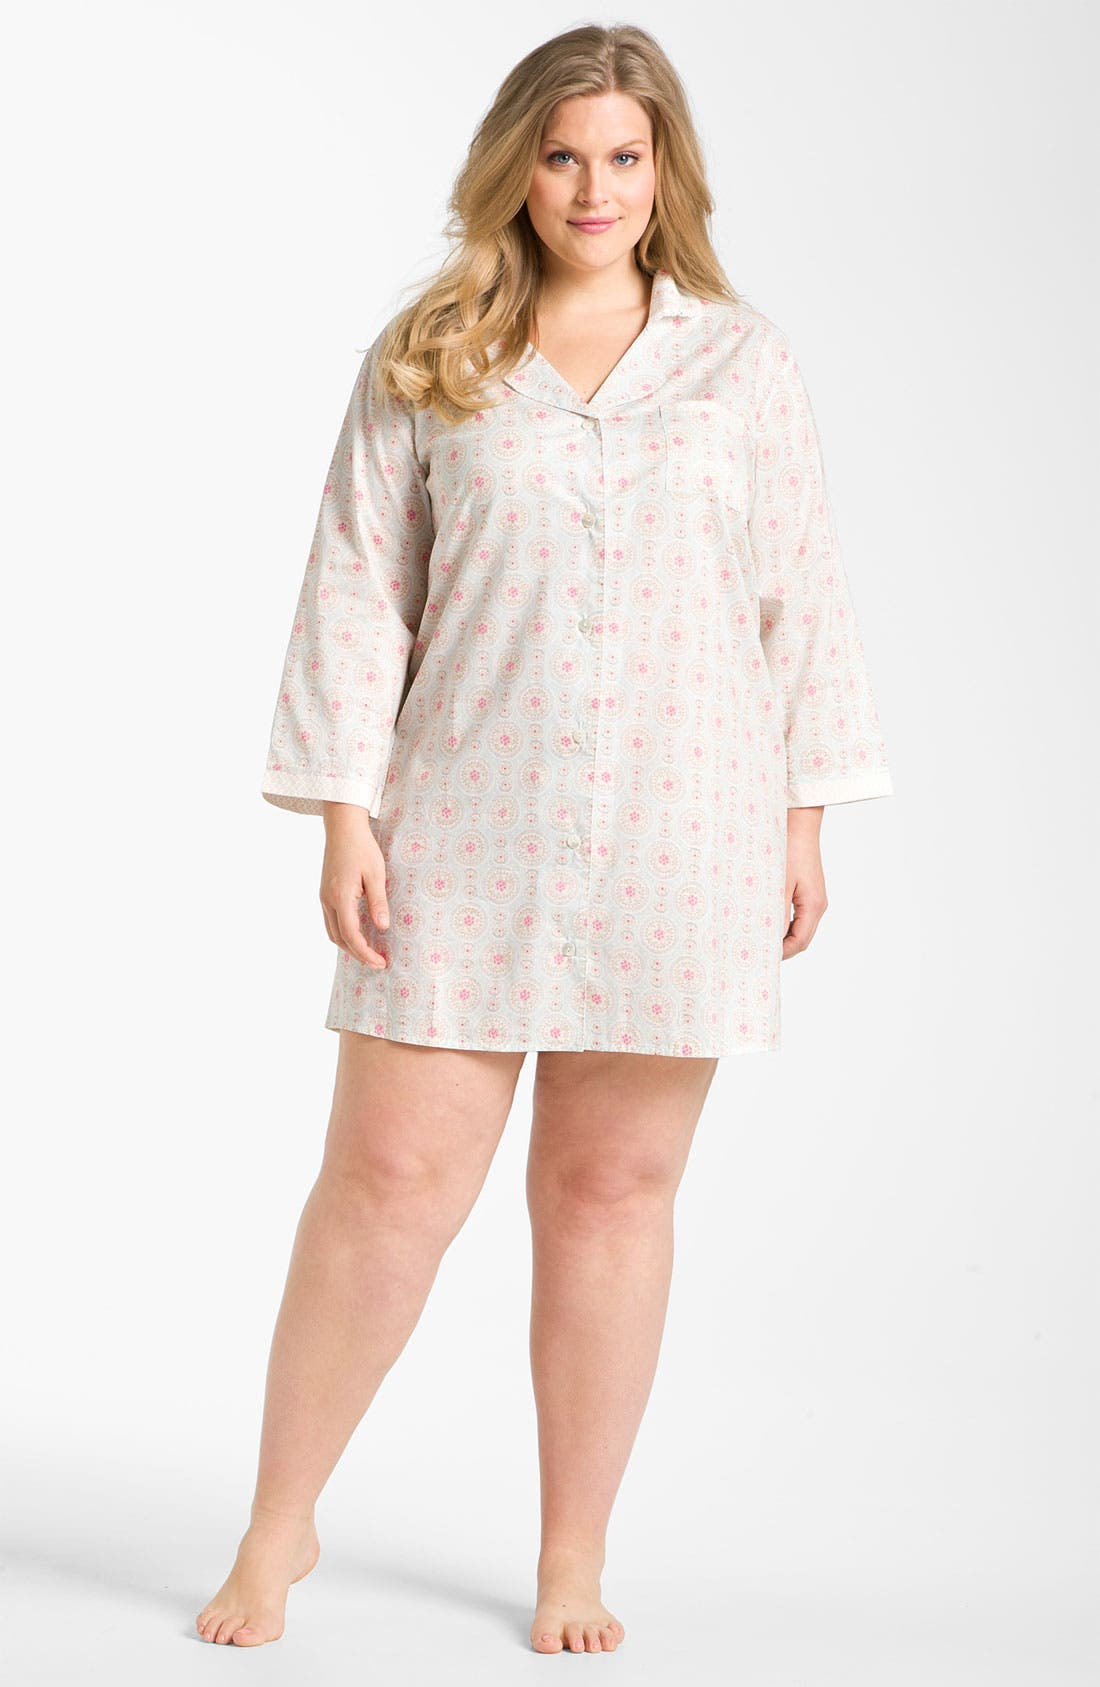 Main Image - Carole Hochman 'Wood Cut Floral' Nightshirt (Plus)